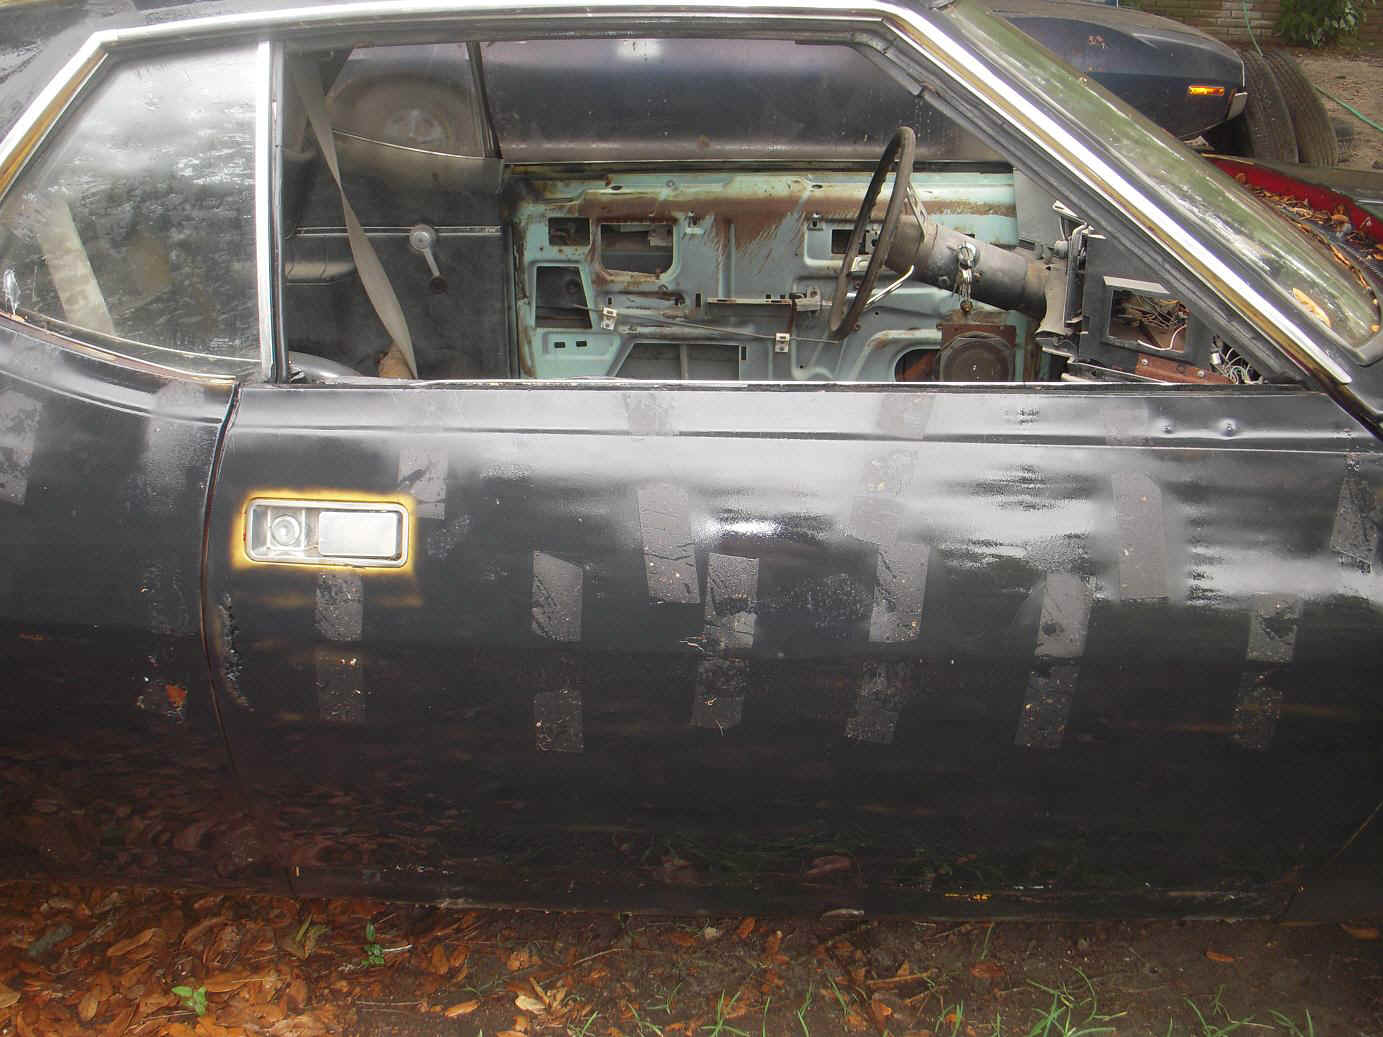 74-amc-amx-for-sale-13.jpg (215960 bytes)